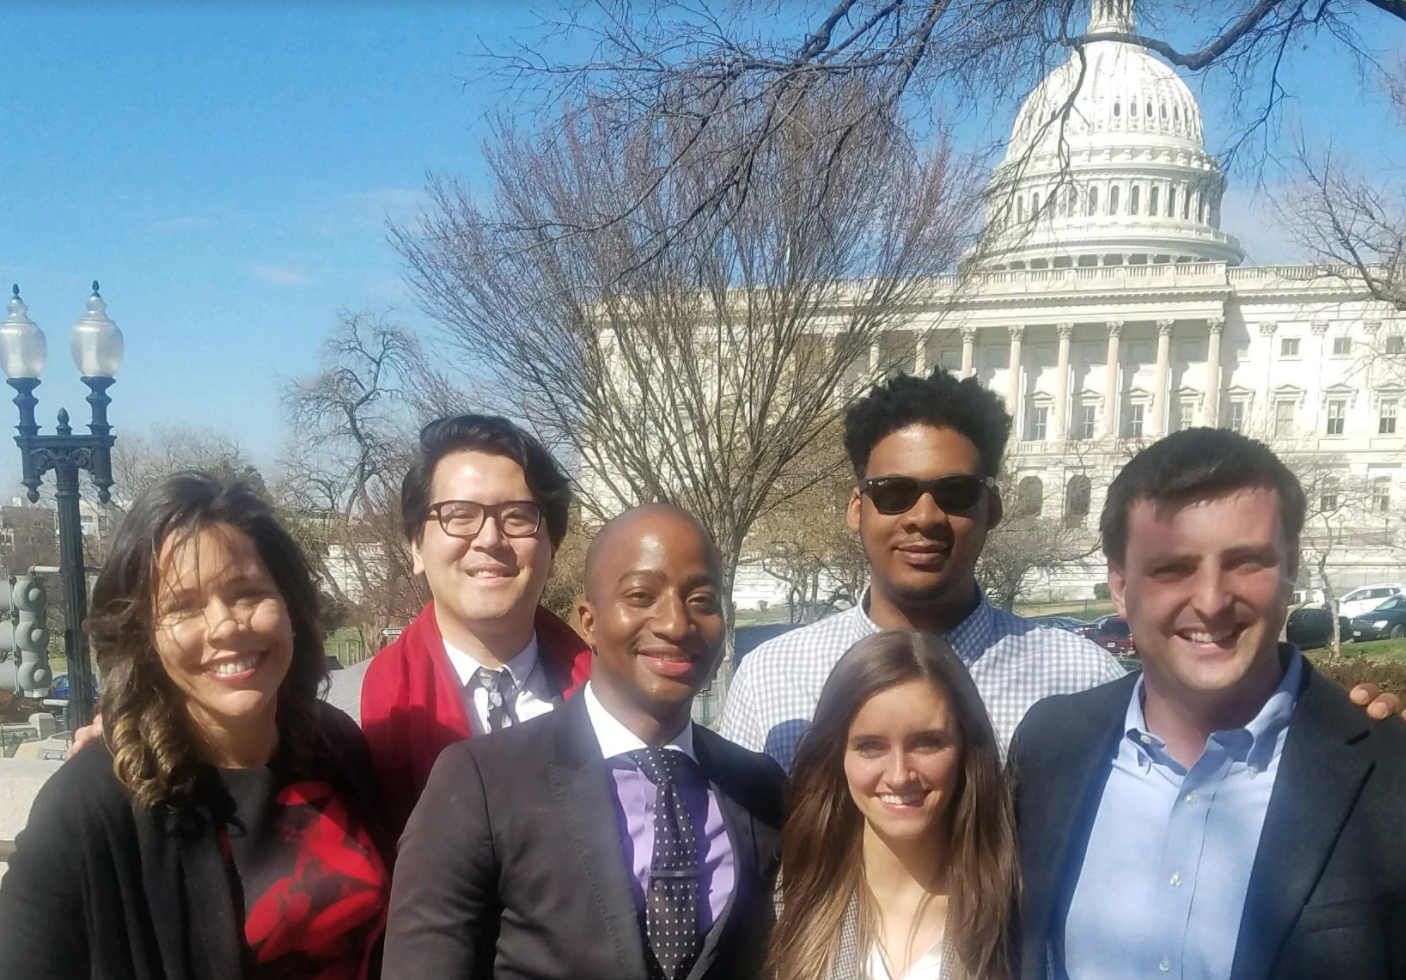 The District Dems founders. Back row from left to right: Eriade Williams, Trelaine Ito, Brandon Gassaway. Front row from left to right: Michael Hardaway, Colleen Carlos, Lin Whitehouse, (Courtesy of District Dems)